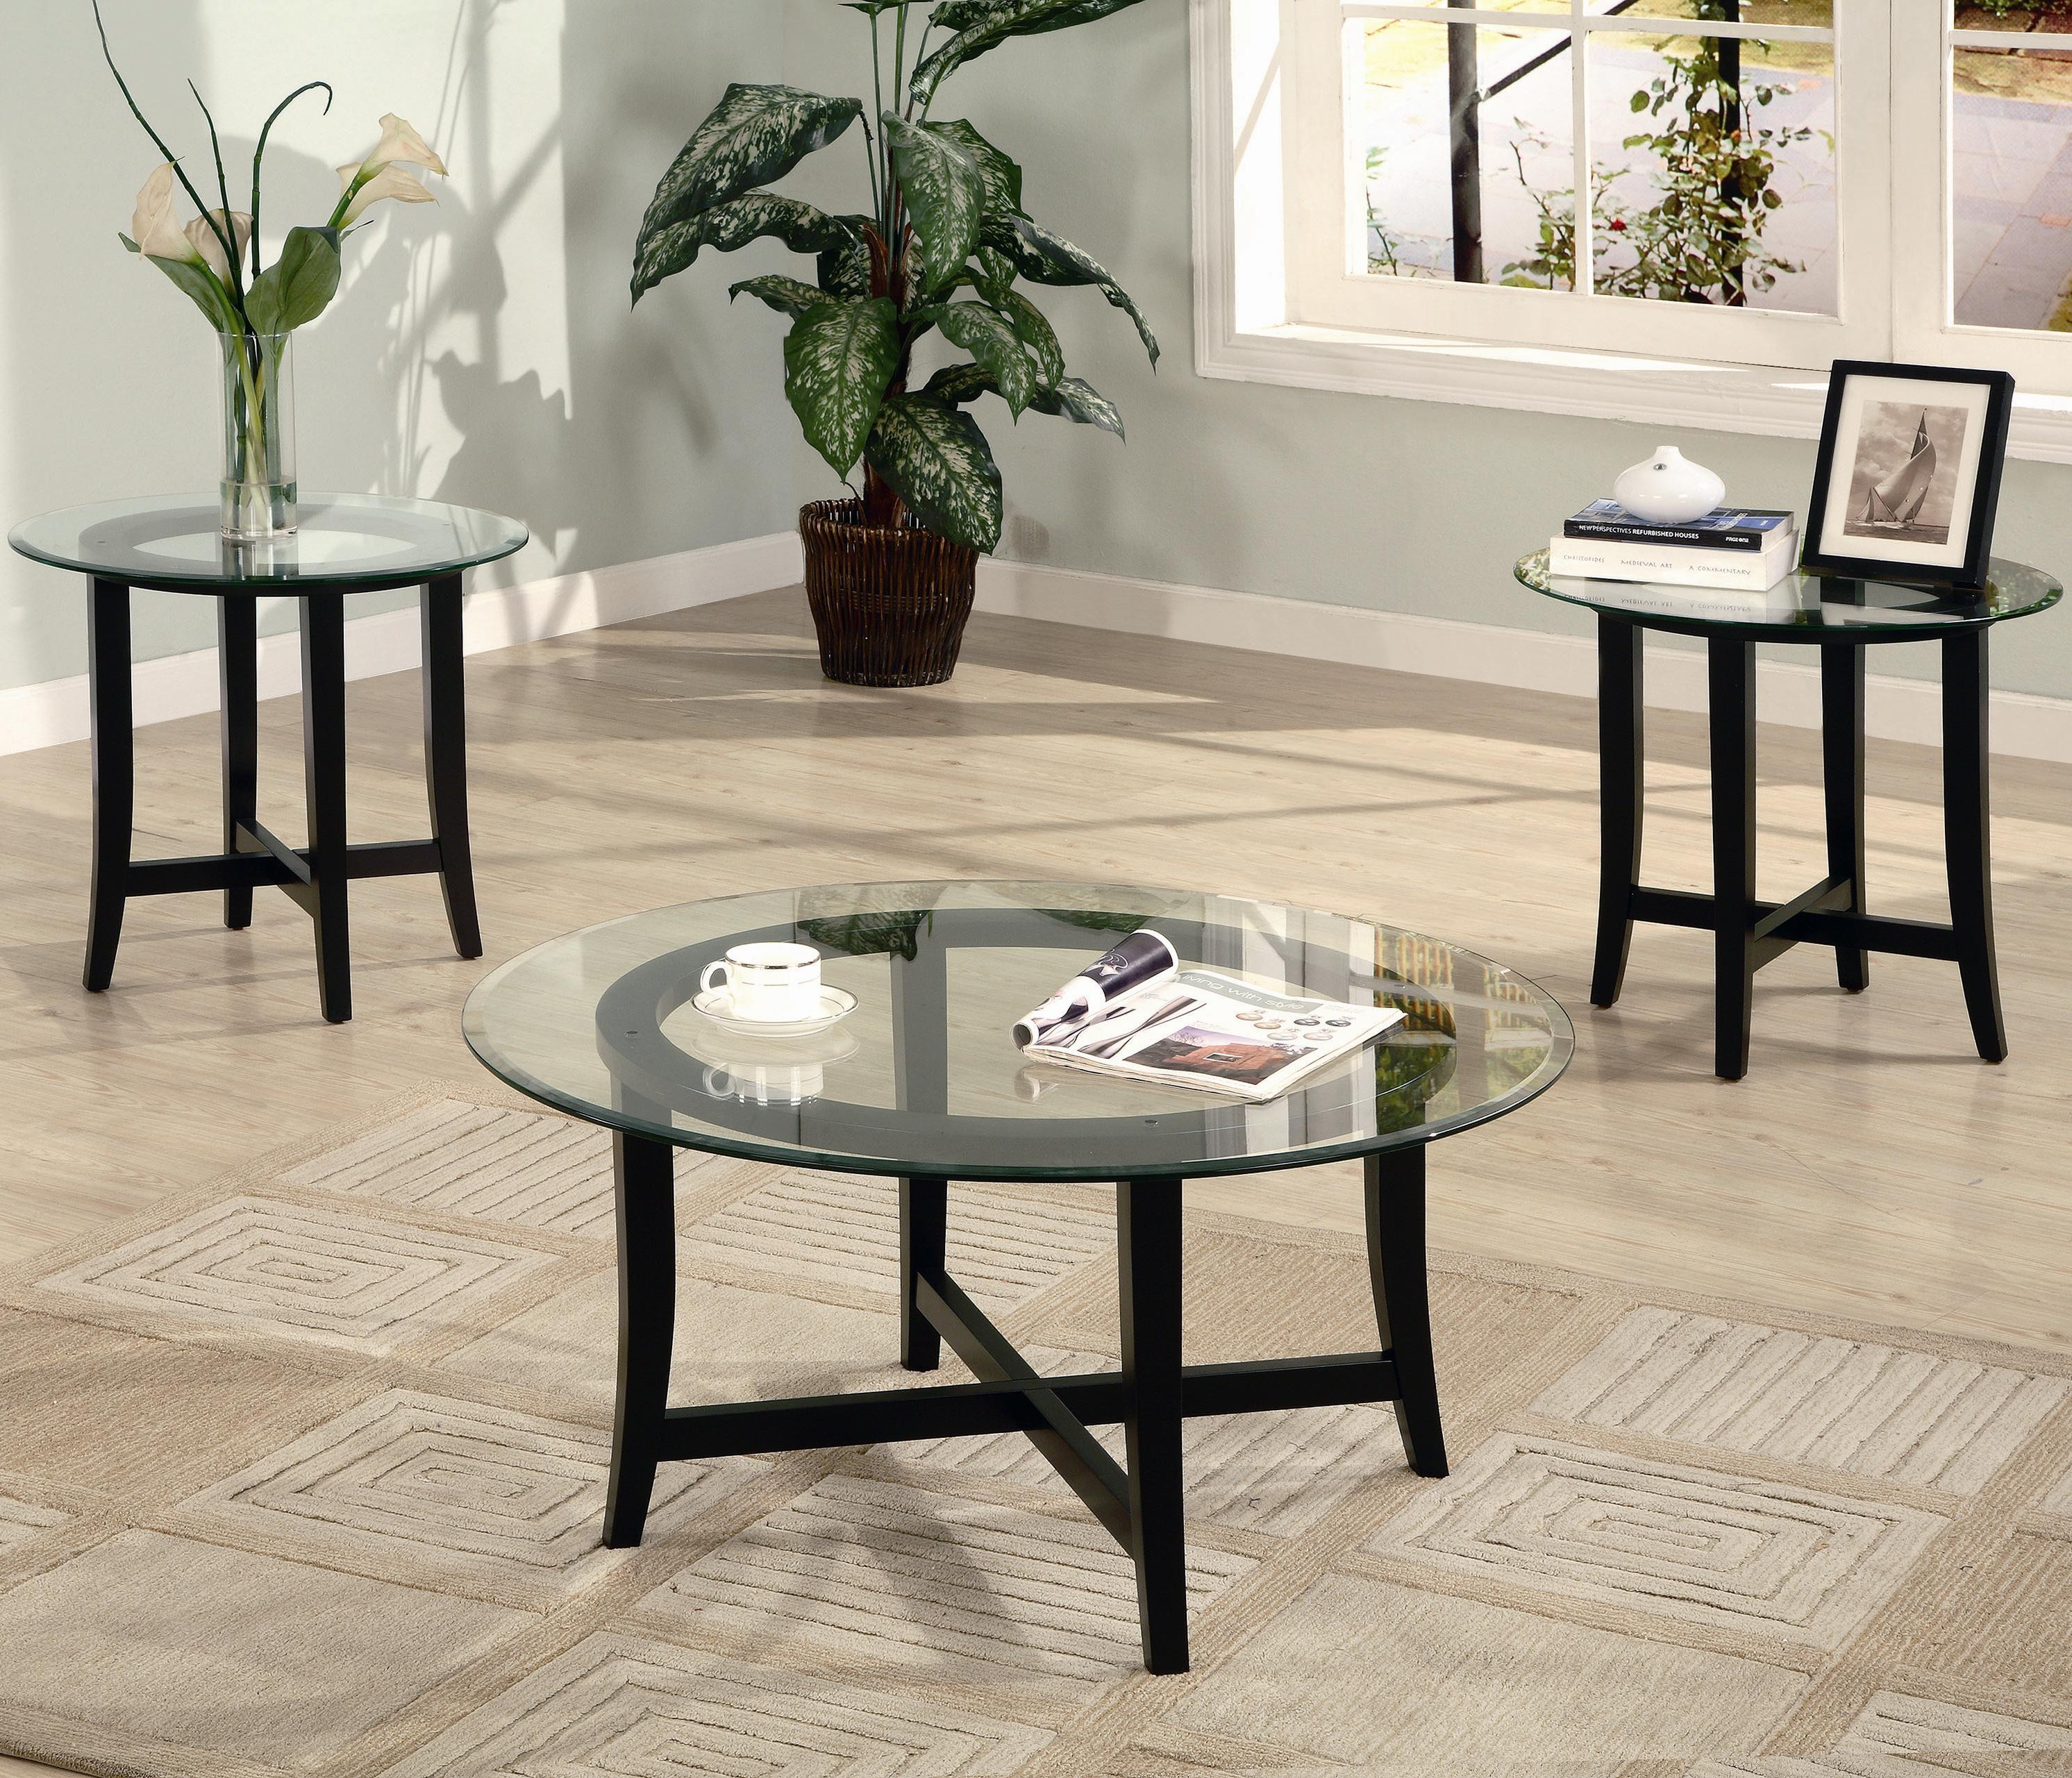 Coaster Occasional Table Sets 3-Piece Contemporary Round Coffee u0026 End Table Set - Coaster Fine Furniture & Coaster Occasional Table Sets 3-Piece Contemporary Round Coffee ...